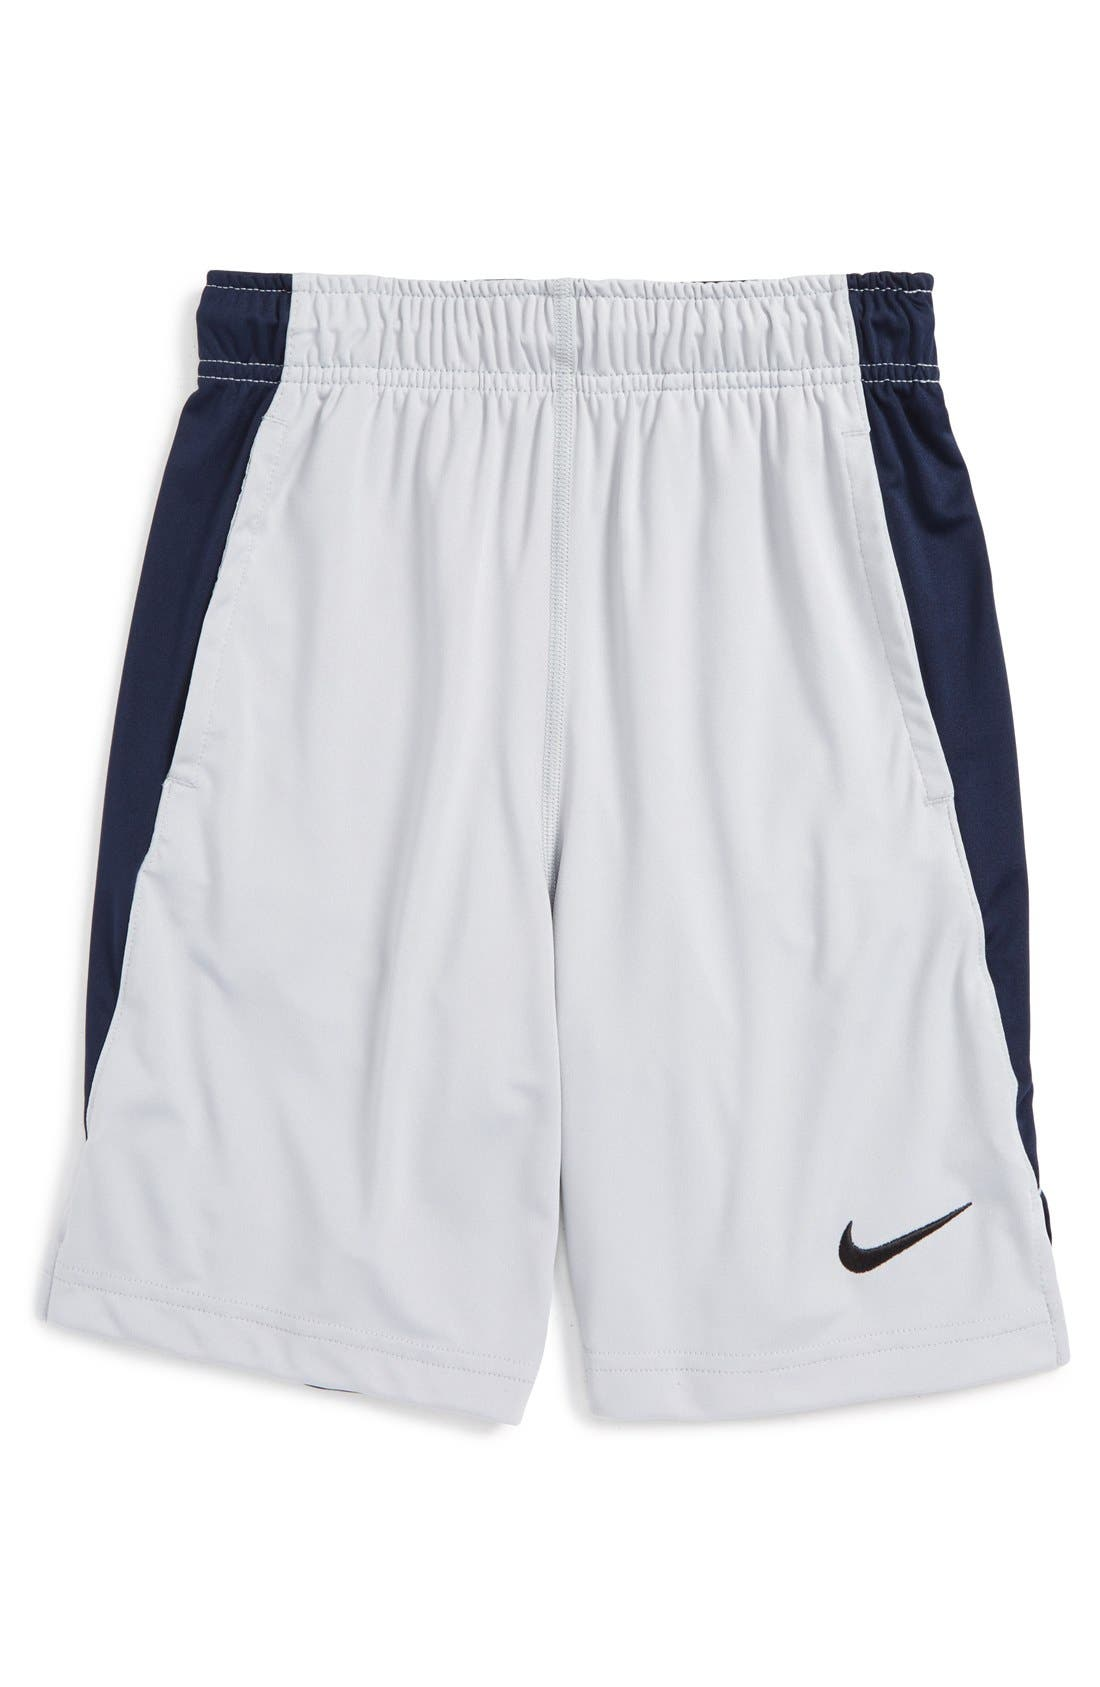 Nike 'Fly' Dri-FIT Training Shorts (Little Boys & Big Boys)